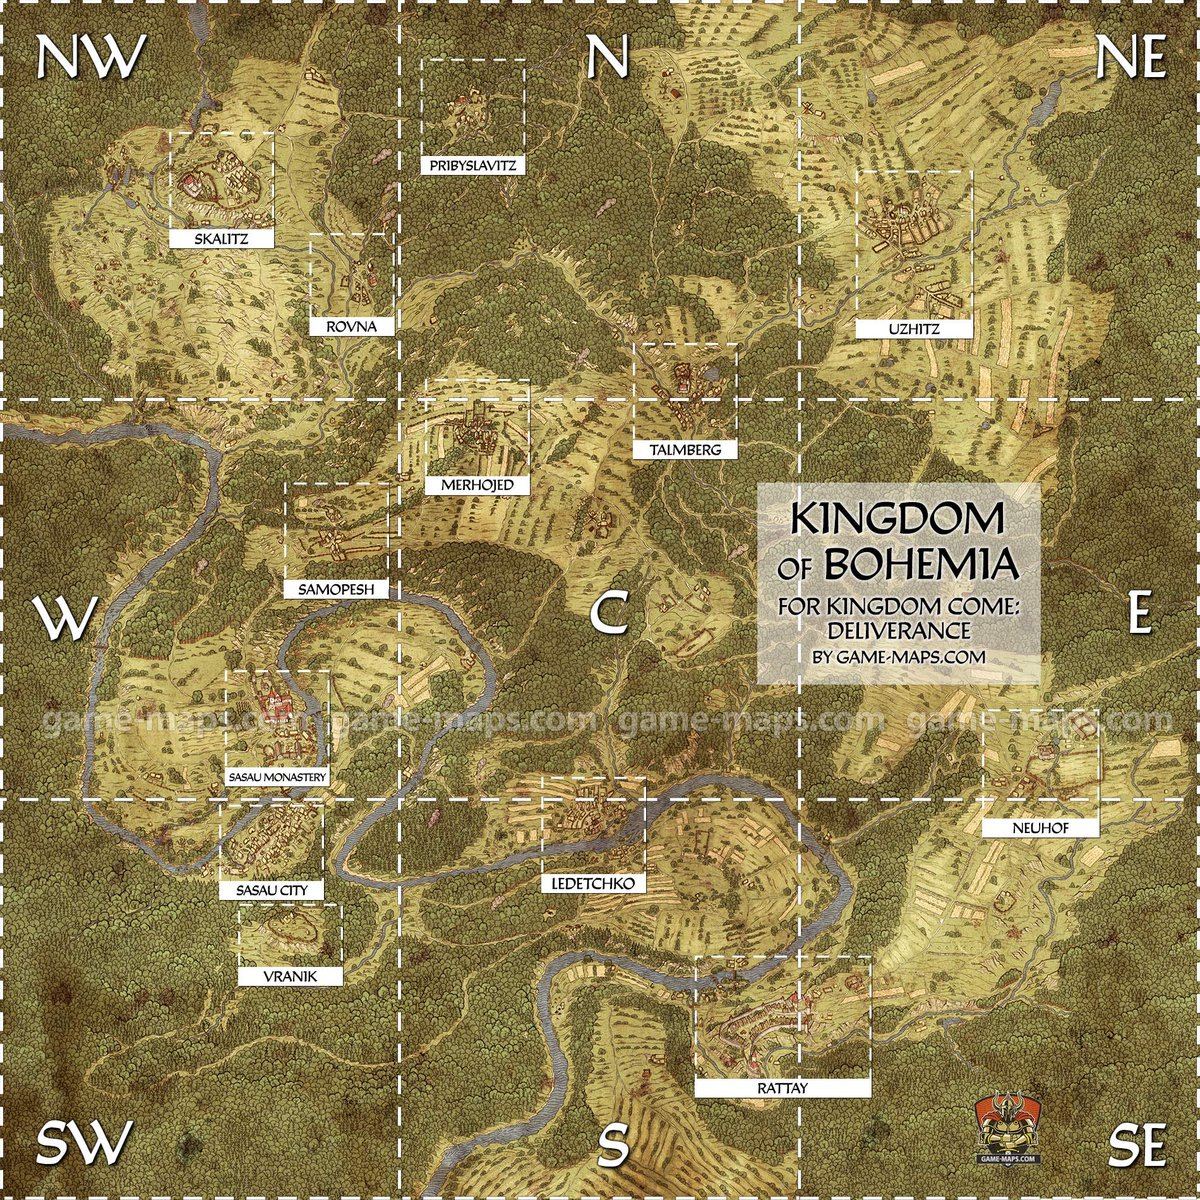 Kingdom Come Deliverance World Map Open World on Twitter: